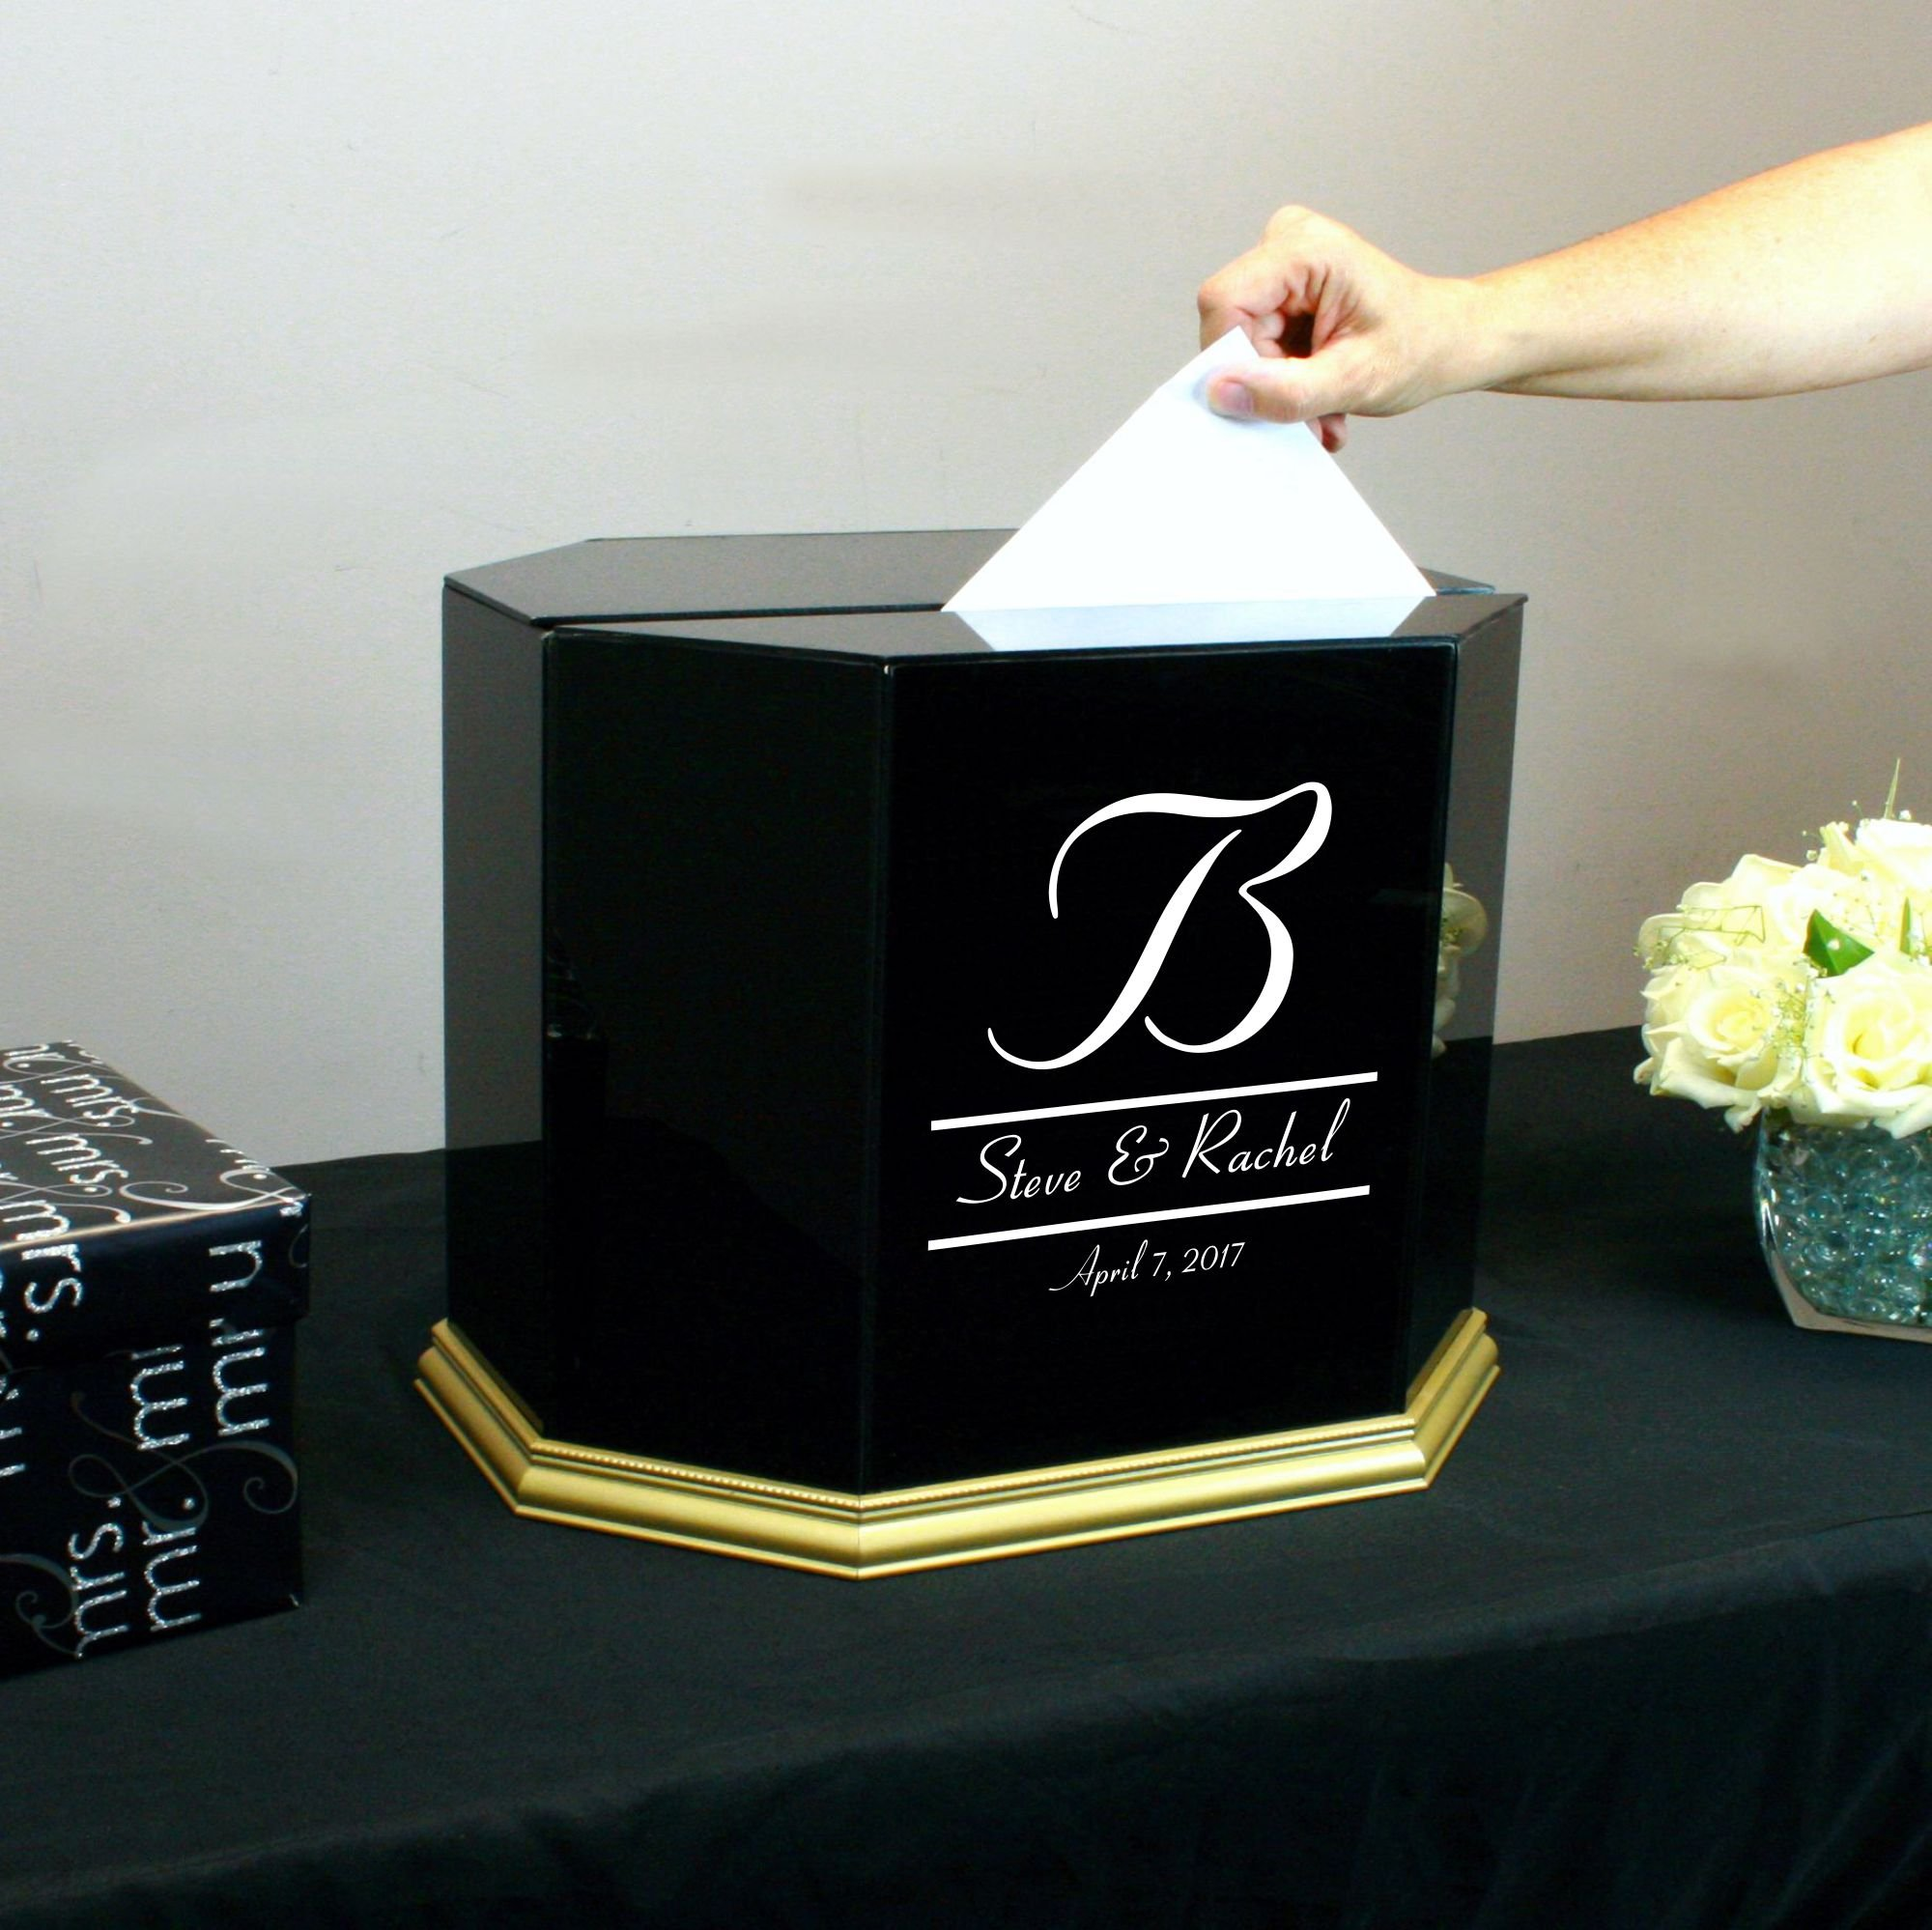 Personalized Wedding Card Box Black Glass with Gold Trim by Perfect Cases